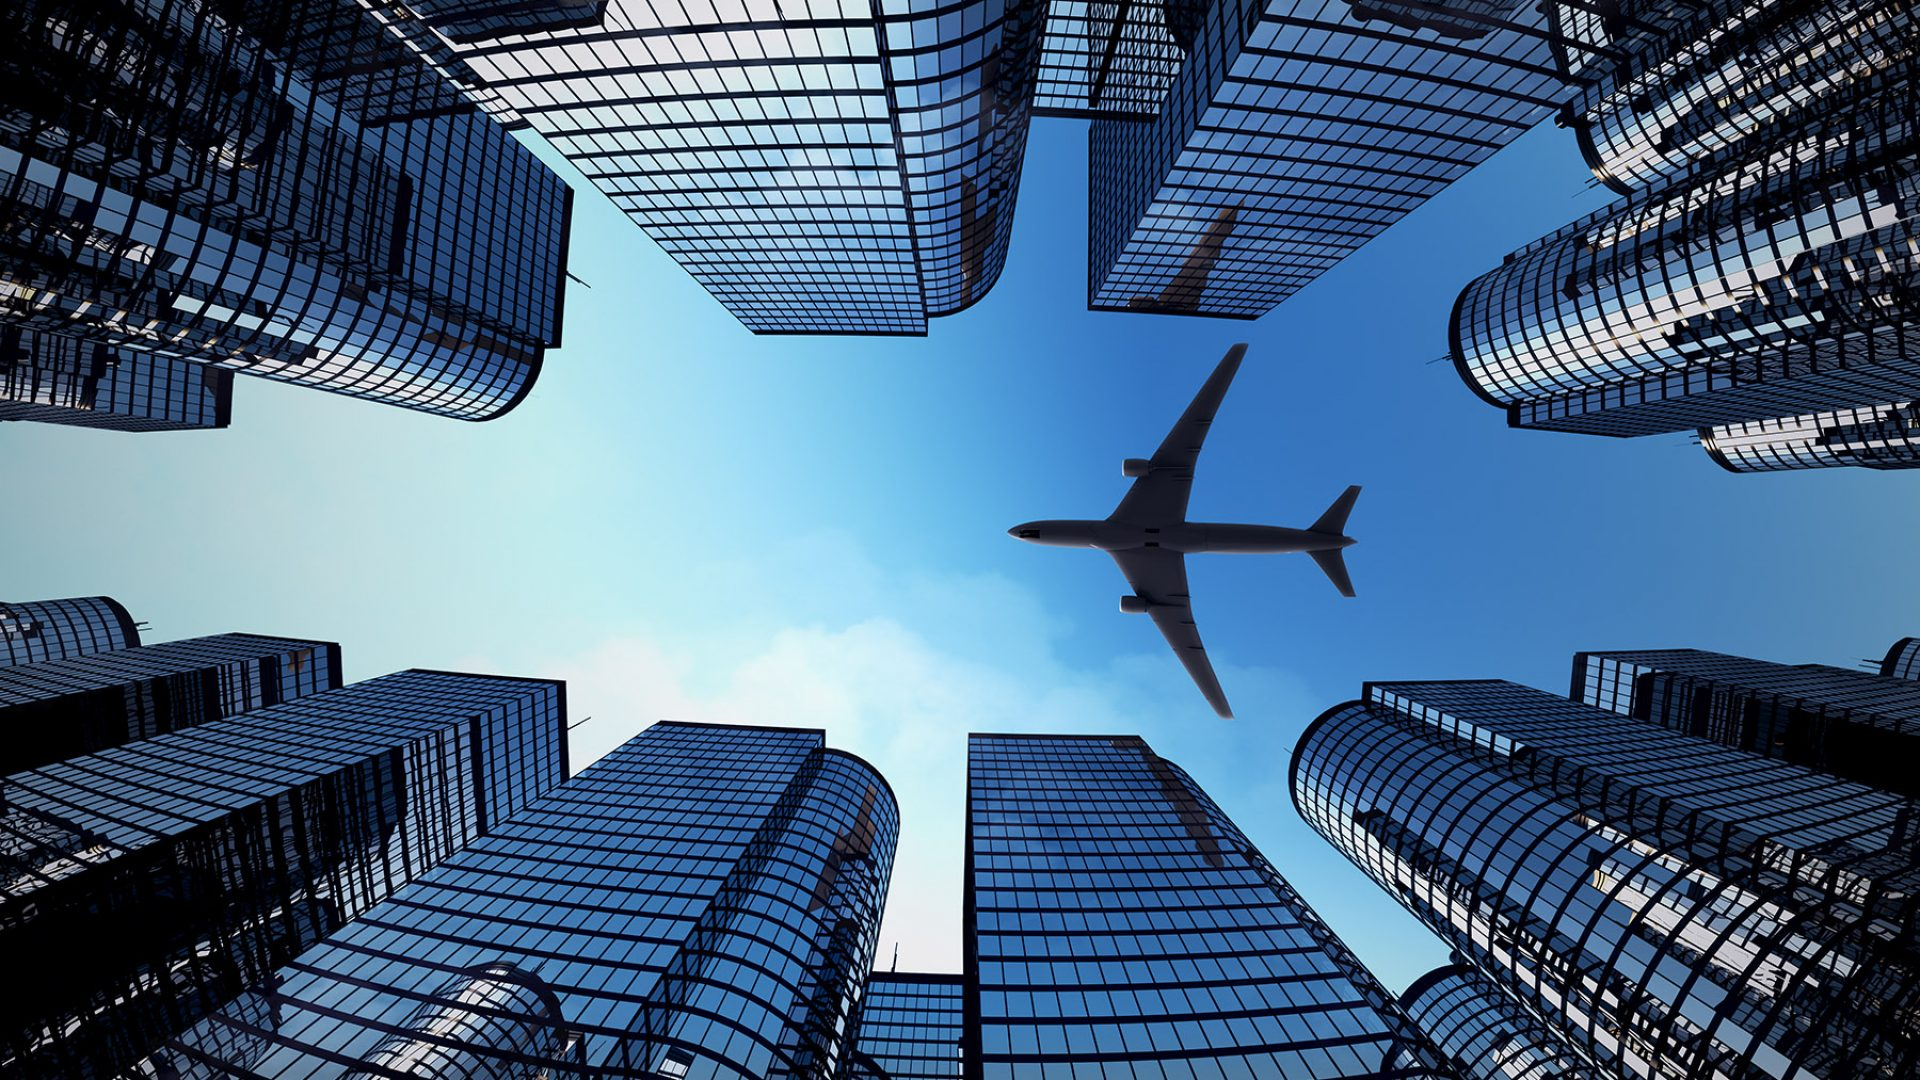 Moving your finances abroad